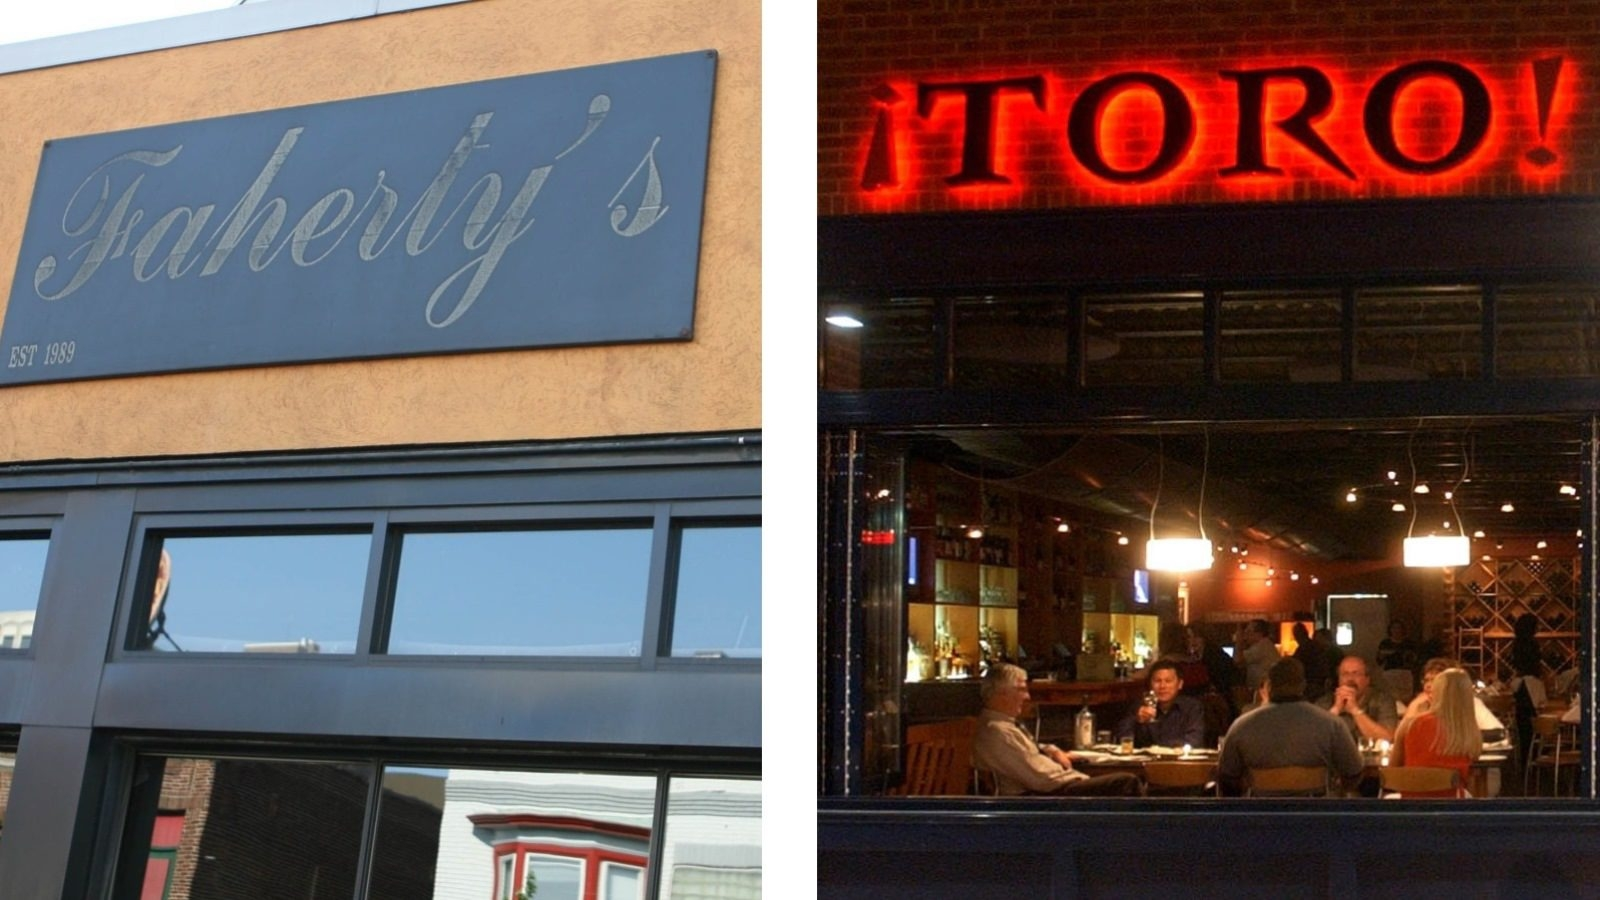 New Restaurant To Open In Former Toro Tapas Bar Faherty S The